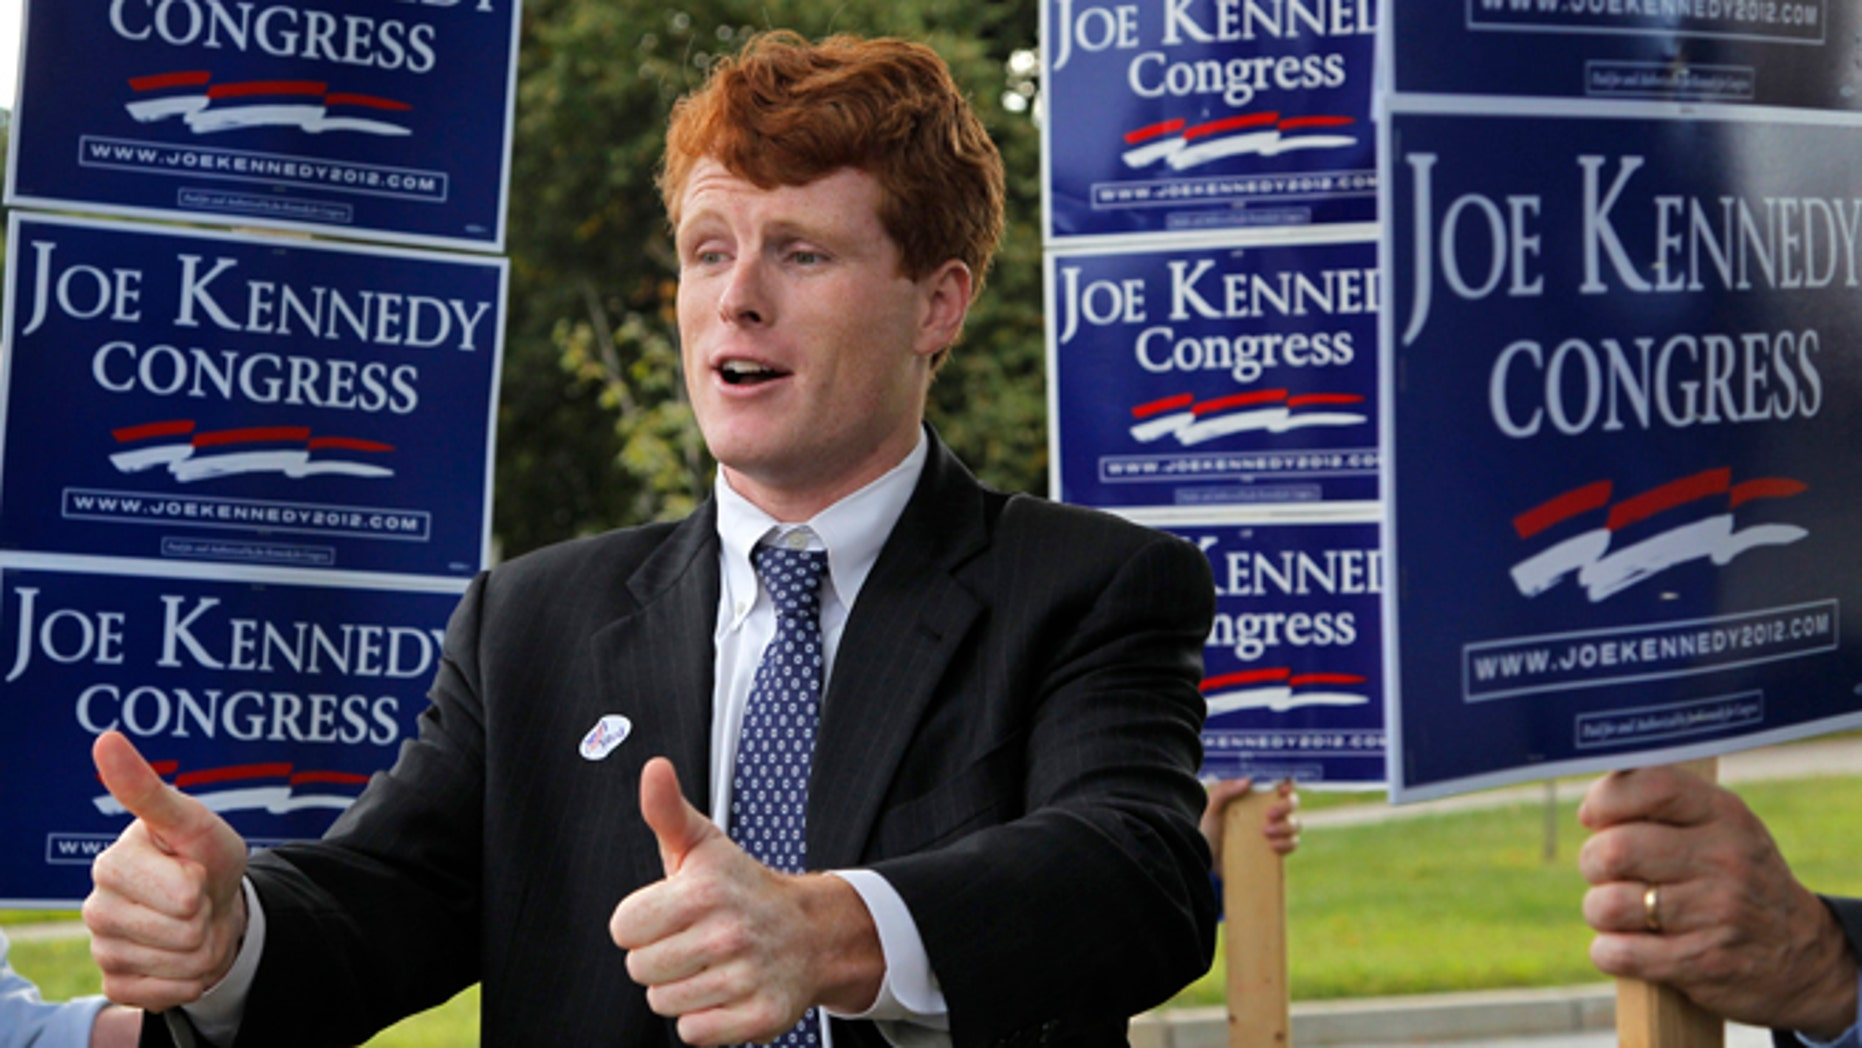 Joseph Kennedy III, son of former U.S. Rep. Joseph P. Kennedy II and grandson of the late Robert F. Kennedy gestures while visiting voters outside a polling station at a school in Needham, Mass., Thursday, Sept. 6, 2012. The 31-year-old Kennedy is vying for the House seat being vacated by Democratic U.S. Rep. Barney Frank. (AP Photo/Steven Senne)